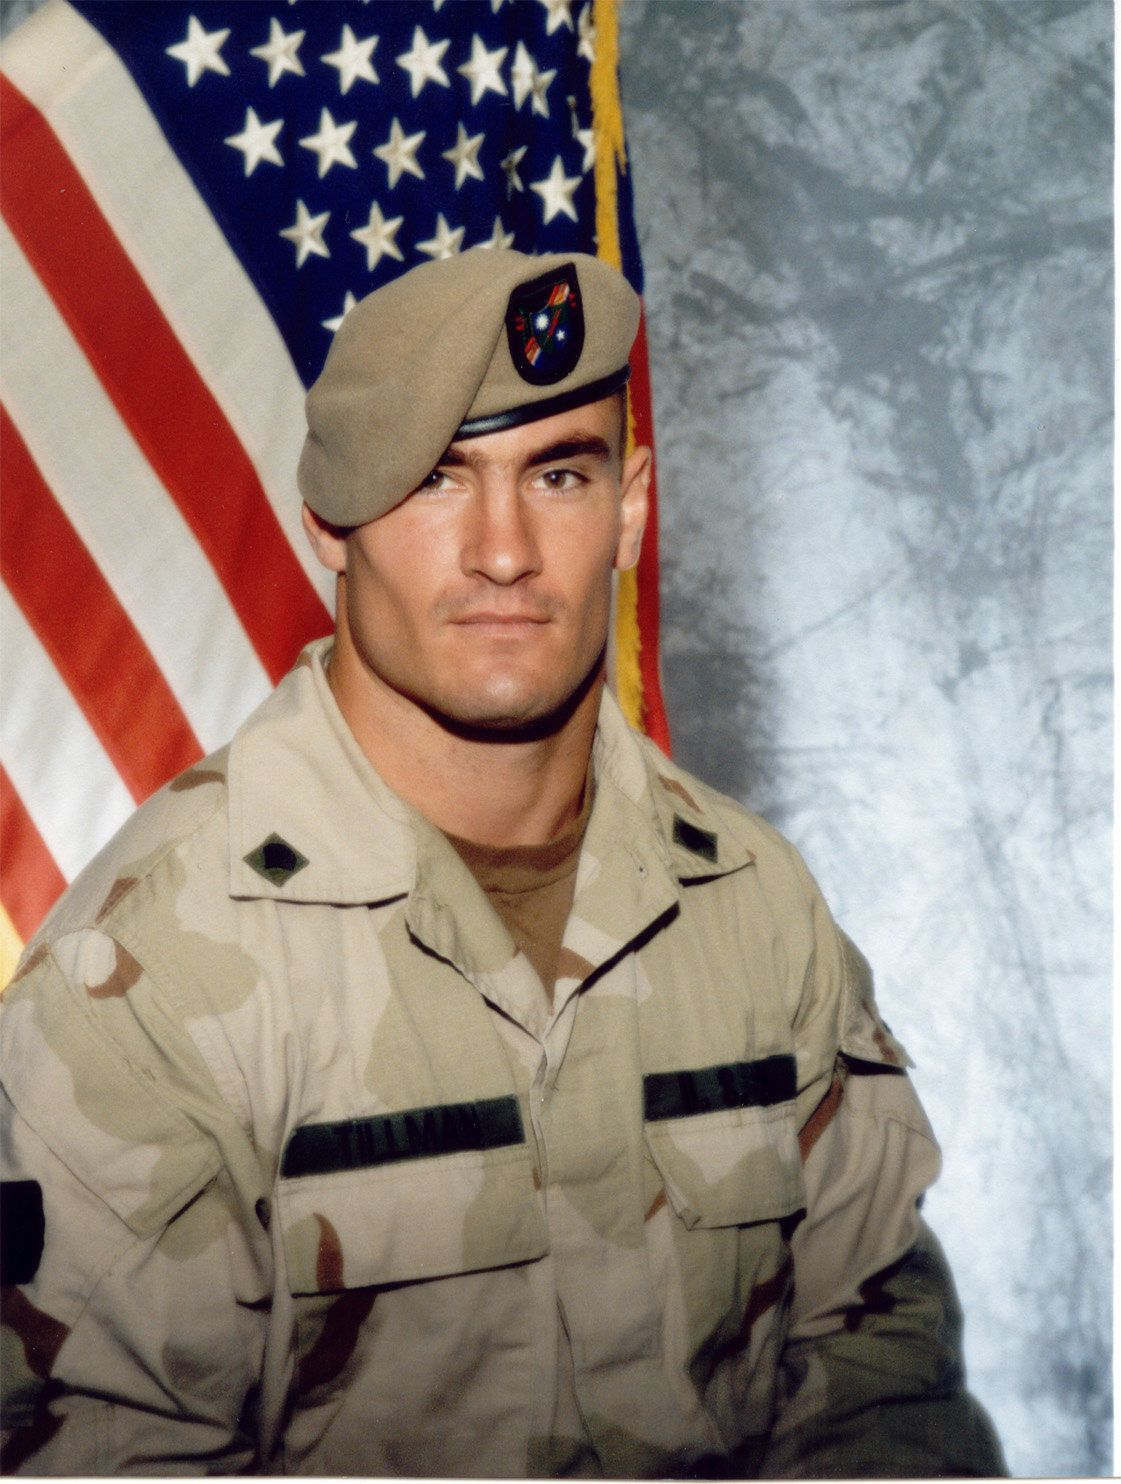 Pat Tillman was killed in combat in 2004.